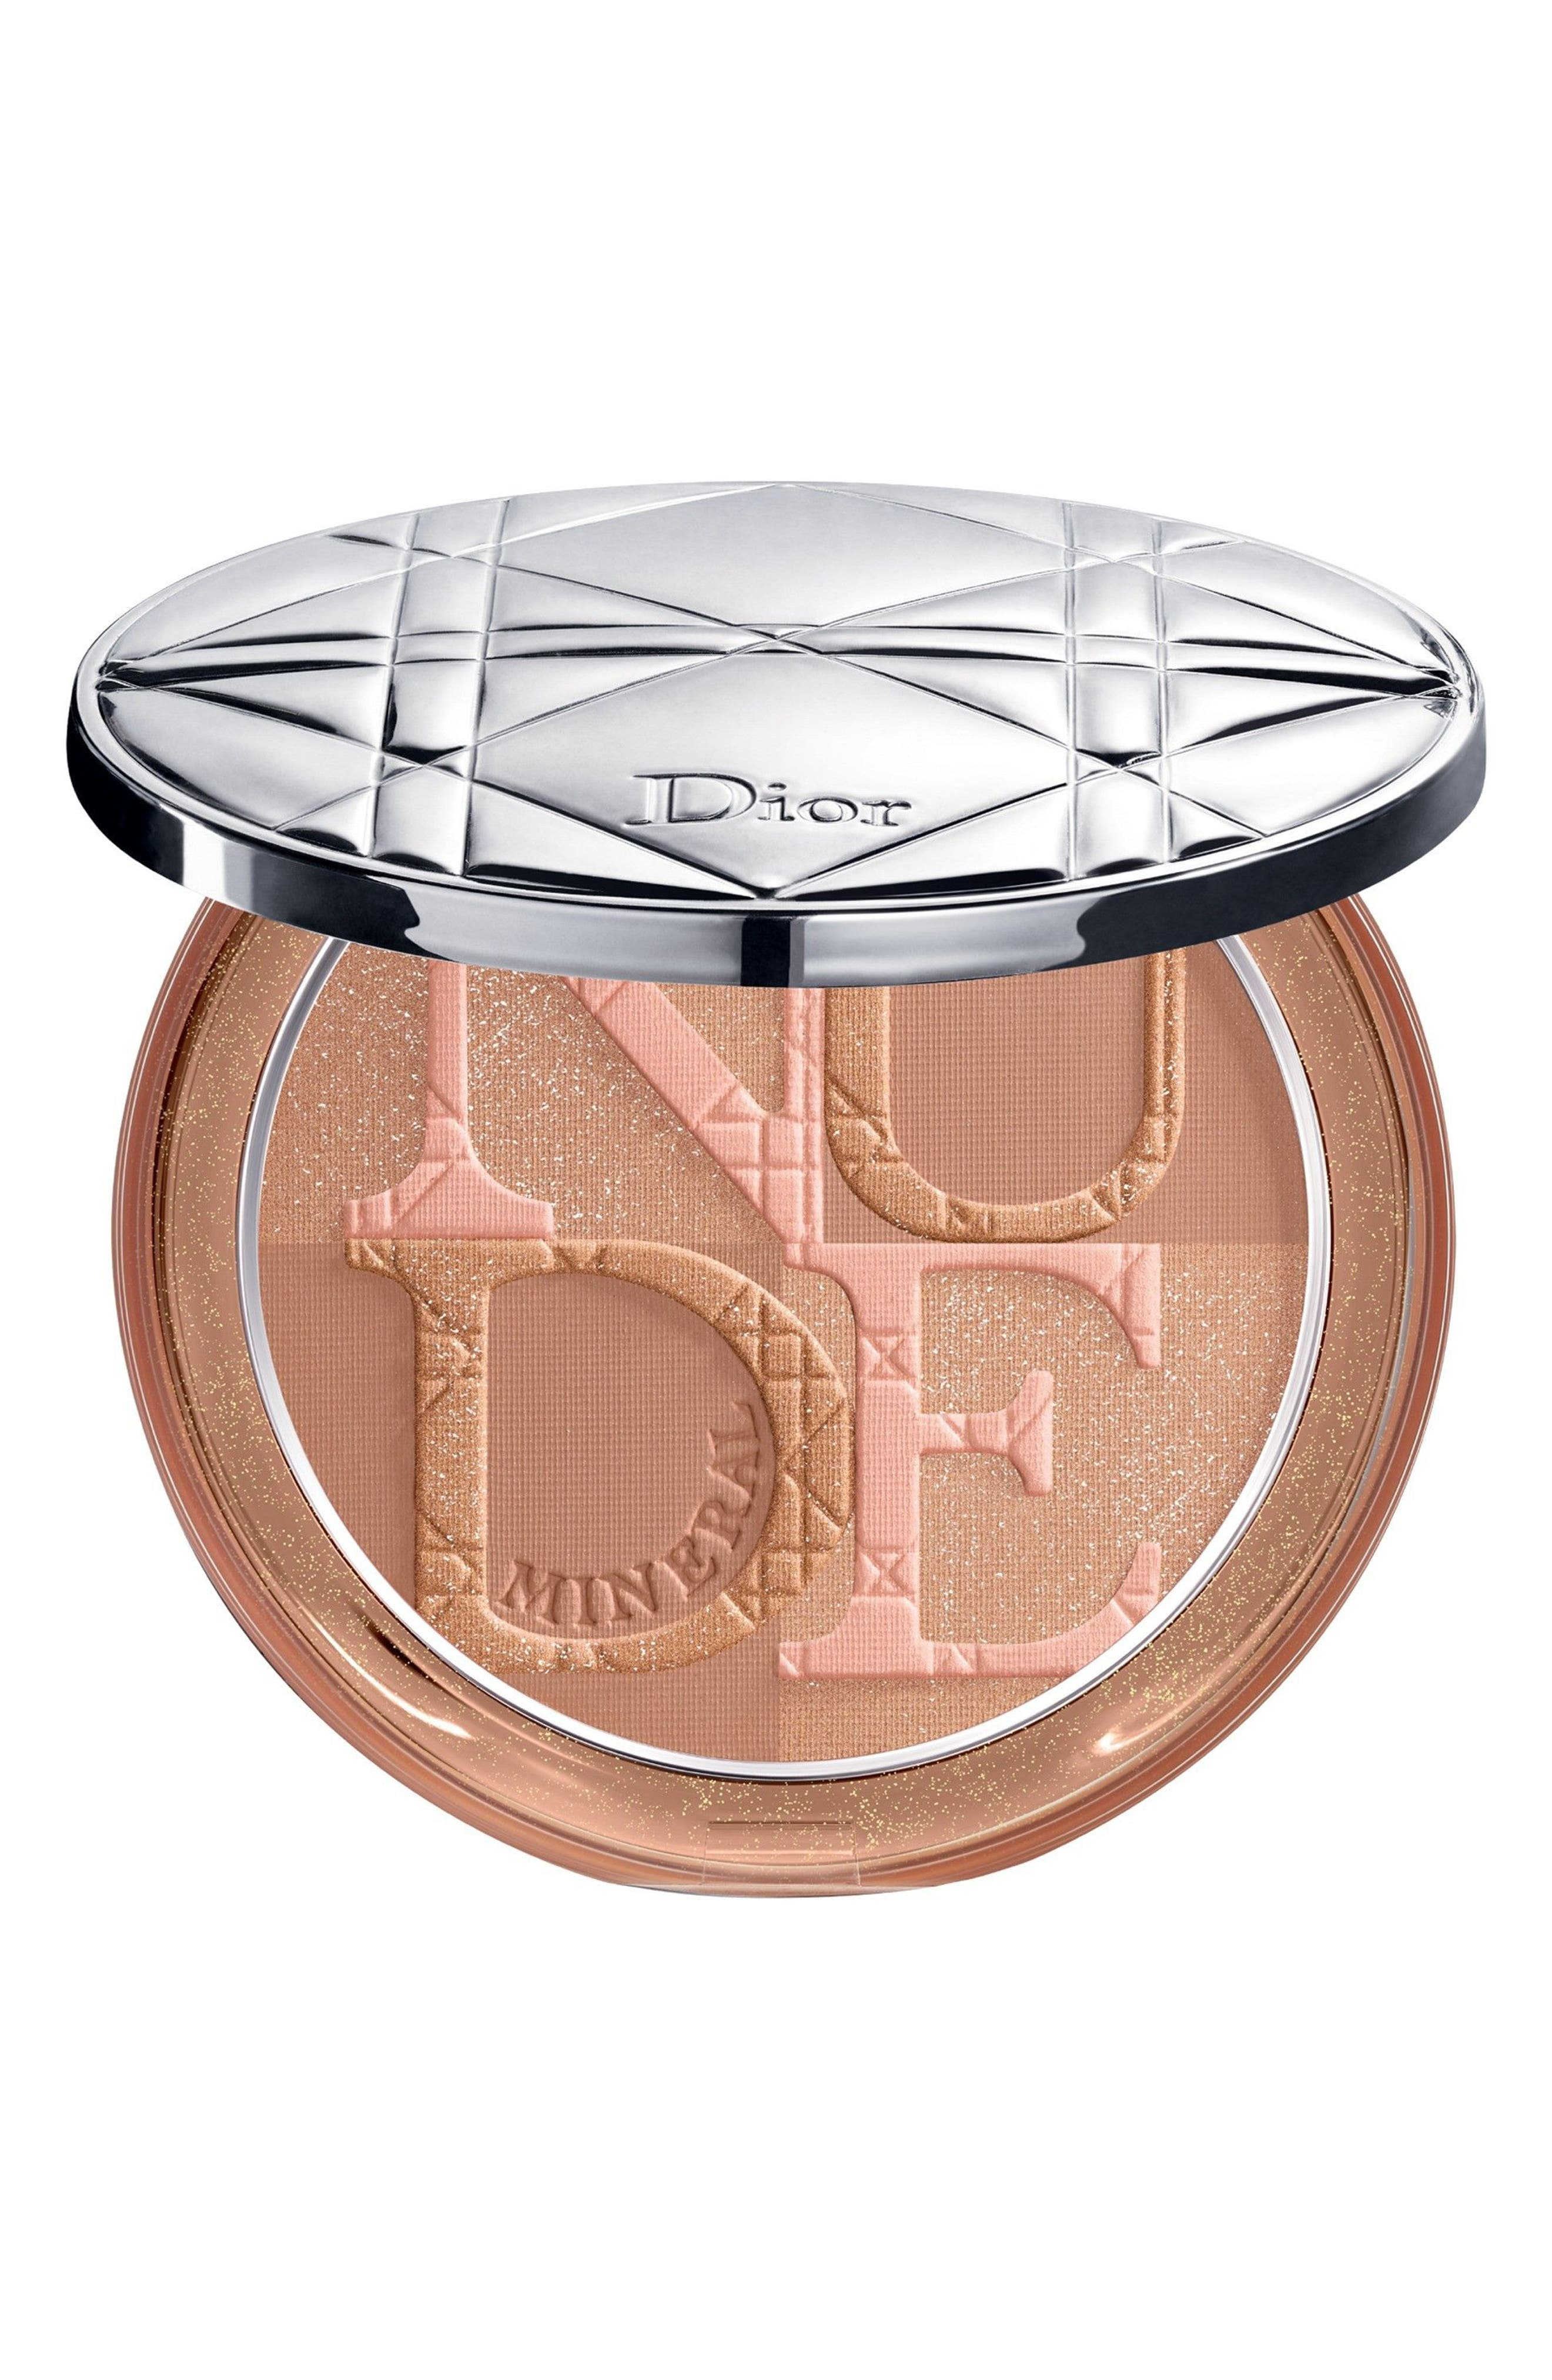 Diorskin Mineral Nude Bronze Powder,                         Main,                         color, 002 Soft Sunlight